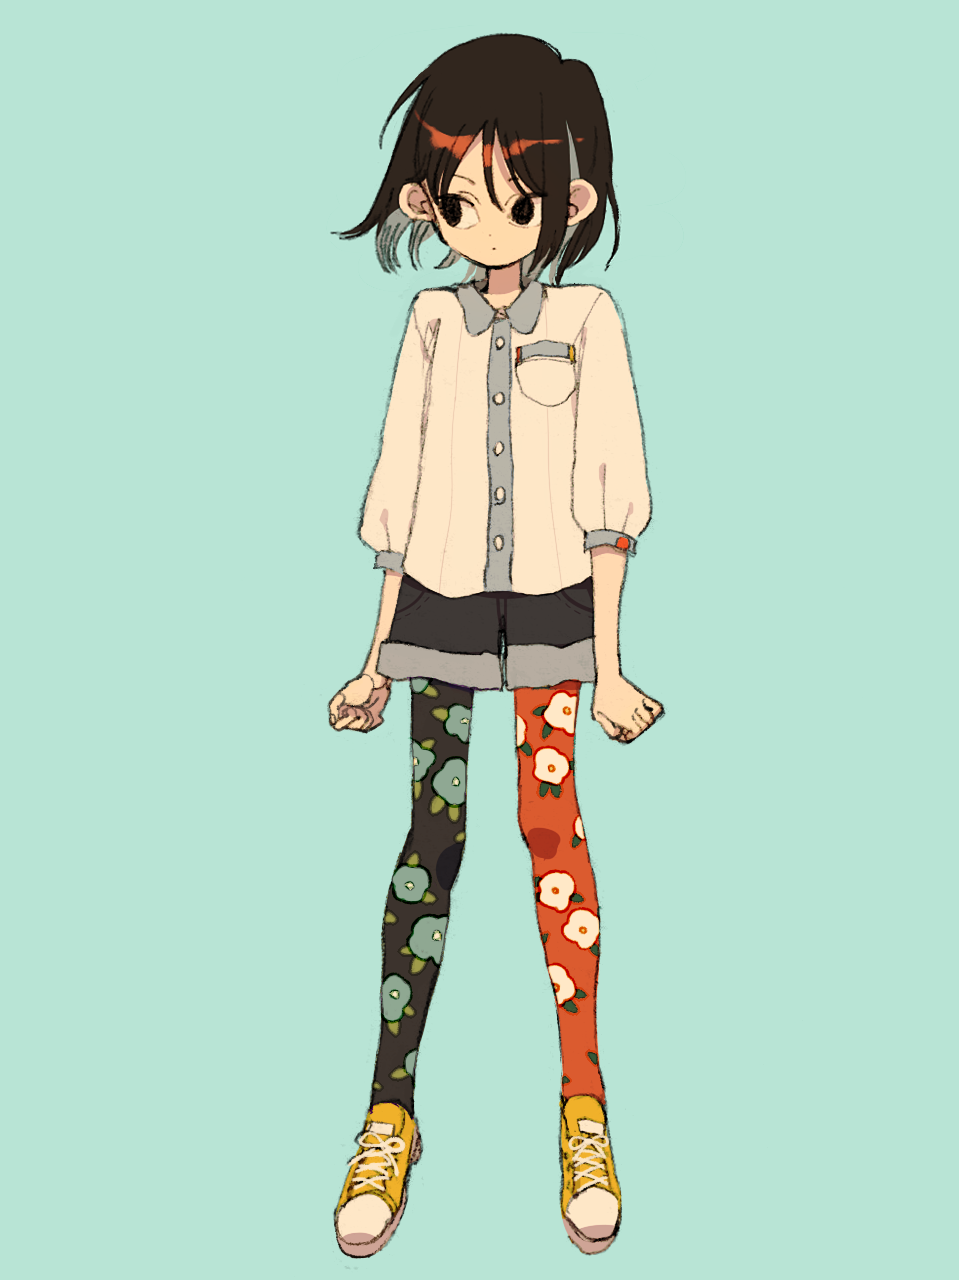 1girl black_eyes black_legwear black_shorts blue_background breast_pocket brown_hair closed_mouth floral_print full_body highres ka_(marukogedago) long_sleeves looking_to_the_side mismatched_legwear original pantyhose pocket red_legwear shiny shiny_hair shirt shoes short_shorts shorts simple_background solo standing white_shirt yellow_footwear